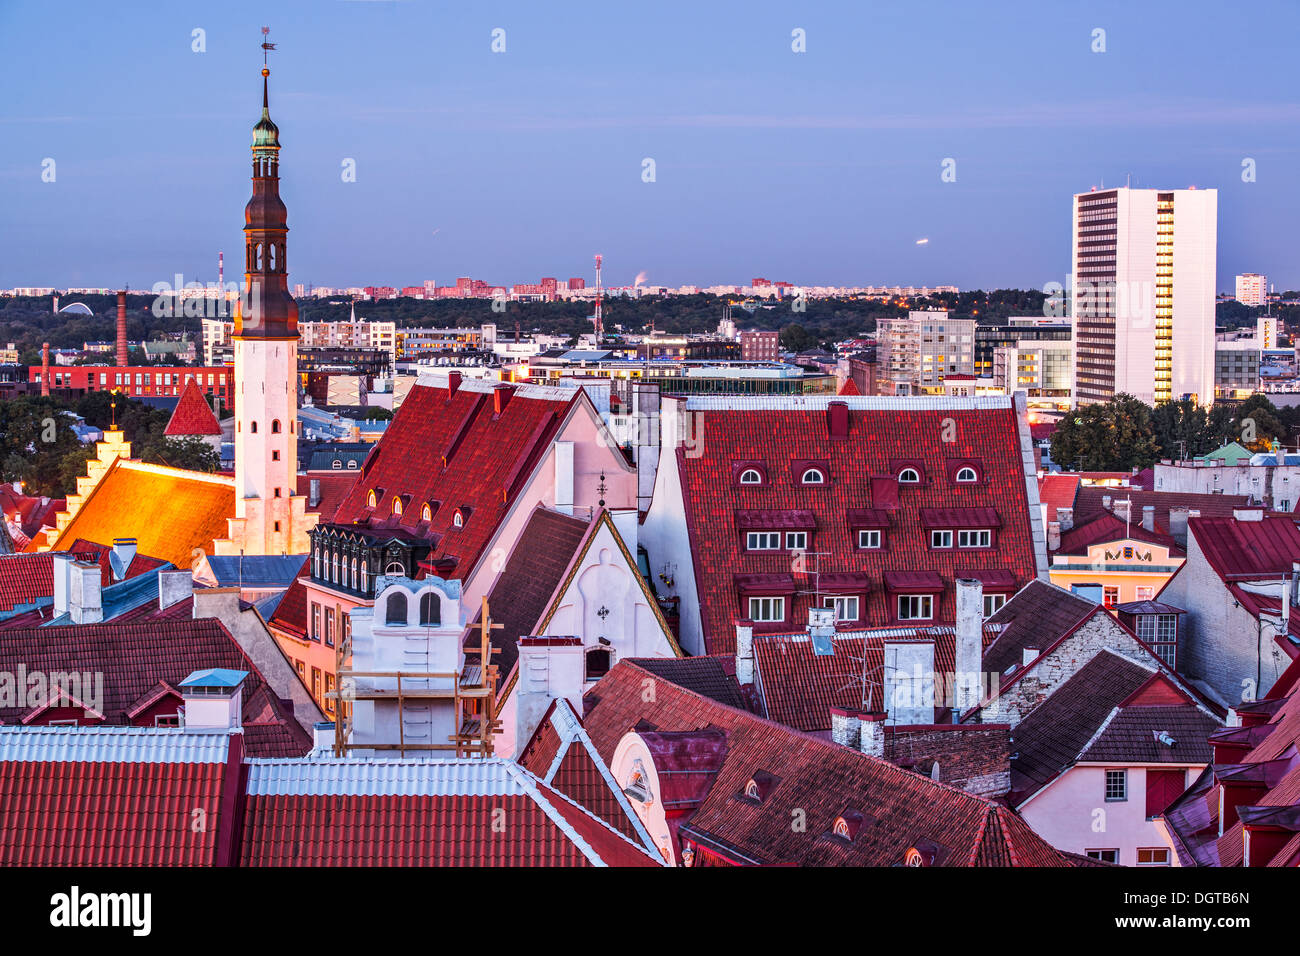 Skyline de Tallinn, Estonie à la vieille ville. Photo Stock